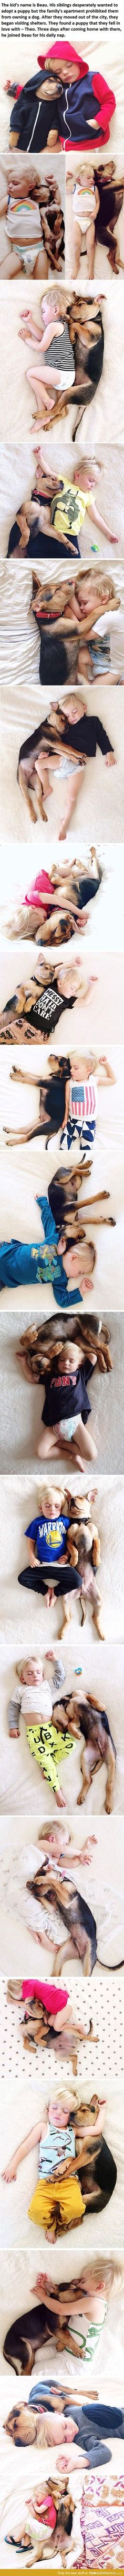 This is the cutest thing to ever happen. Considering a dog's brain is much the same as a 2 year old's, these pictures totally make sense